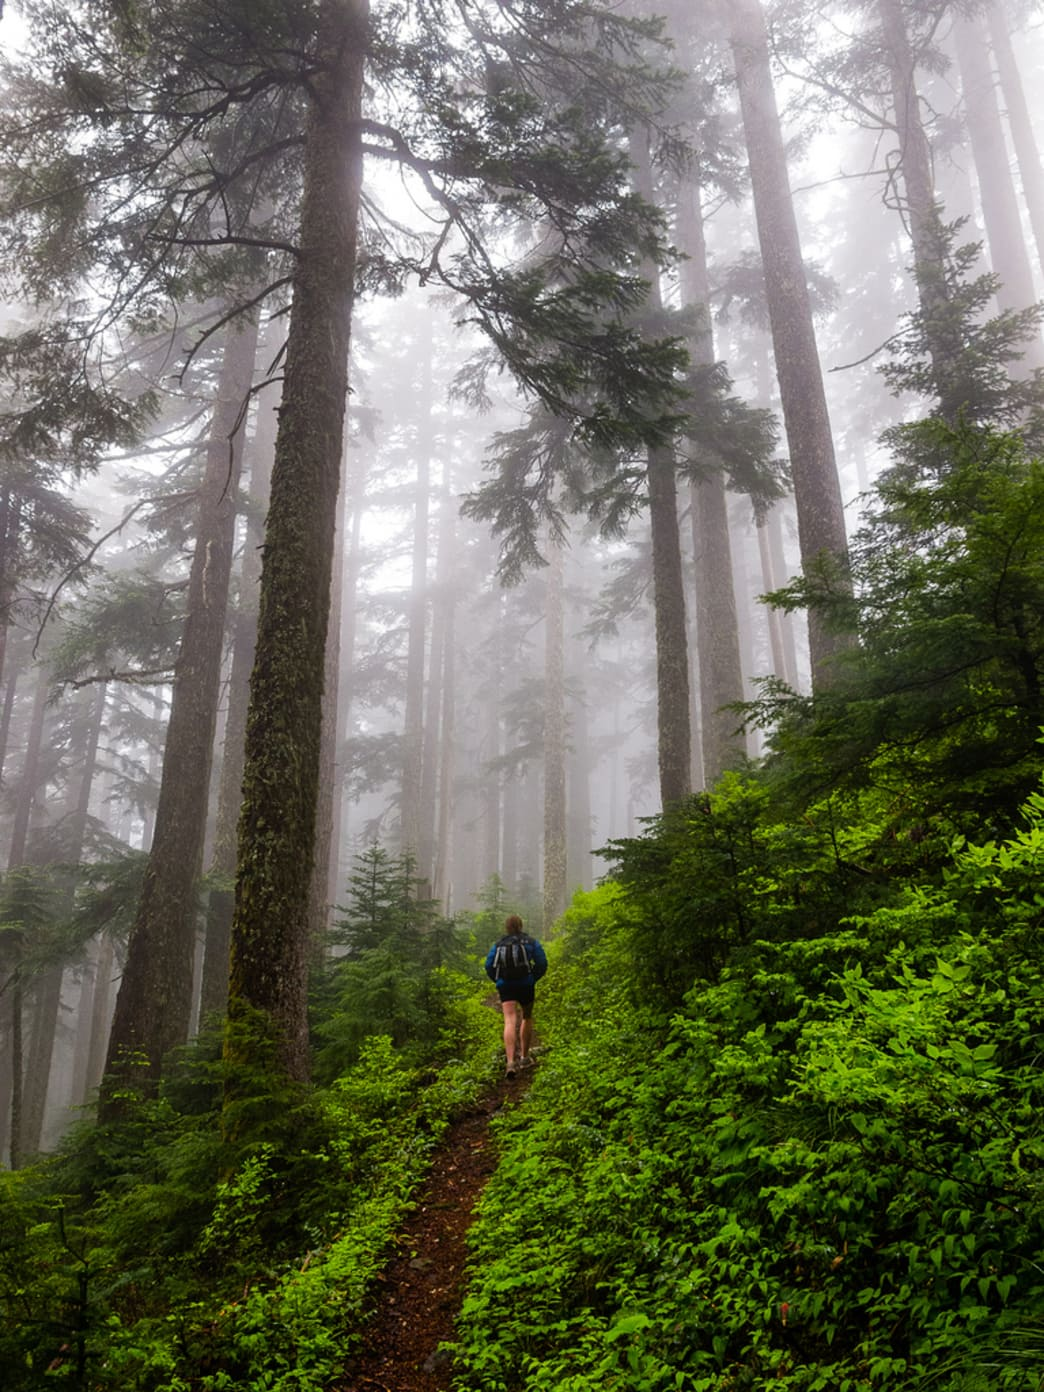 Hiking through the Oregon forest from the Wahtum Lake Trailhead